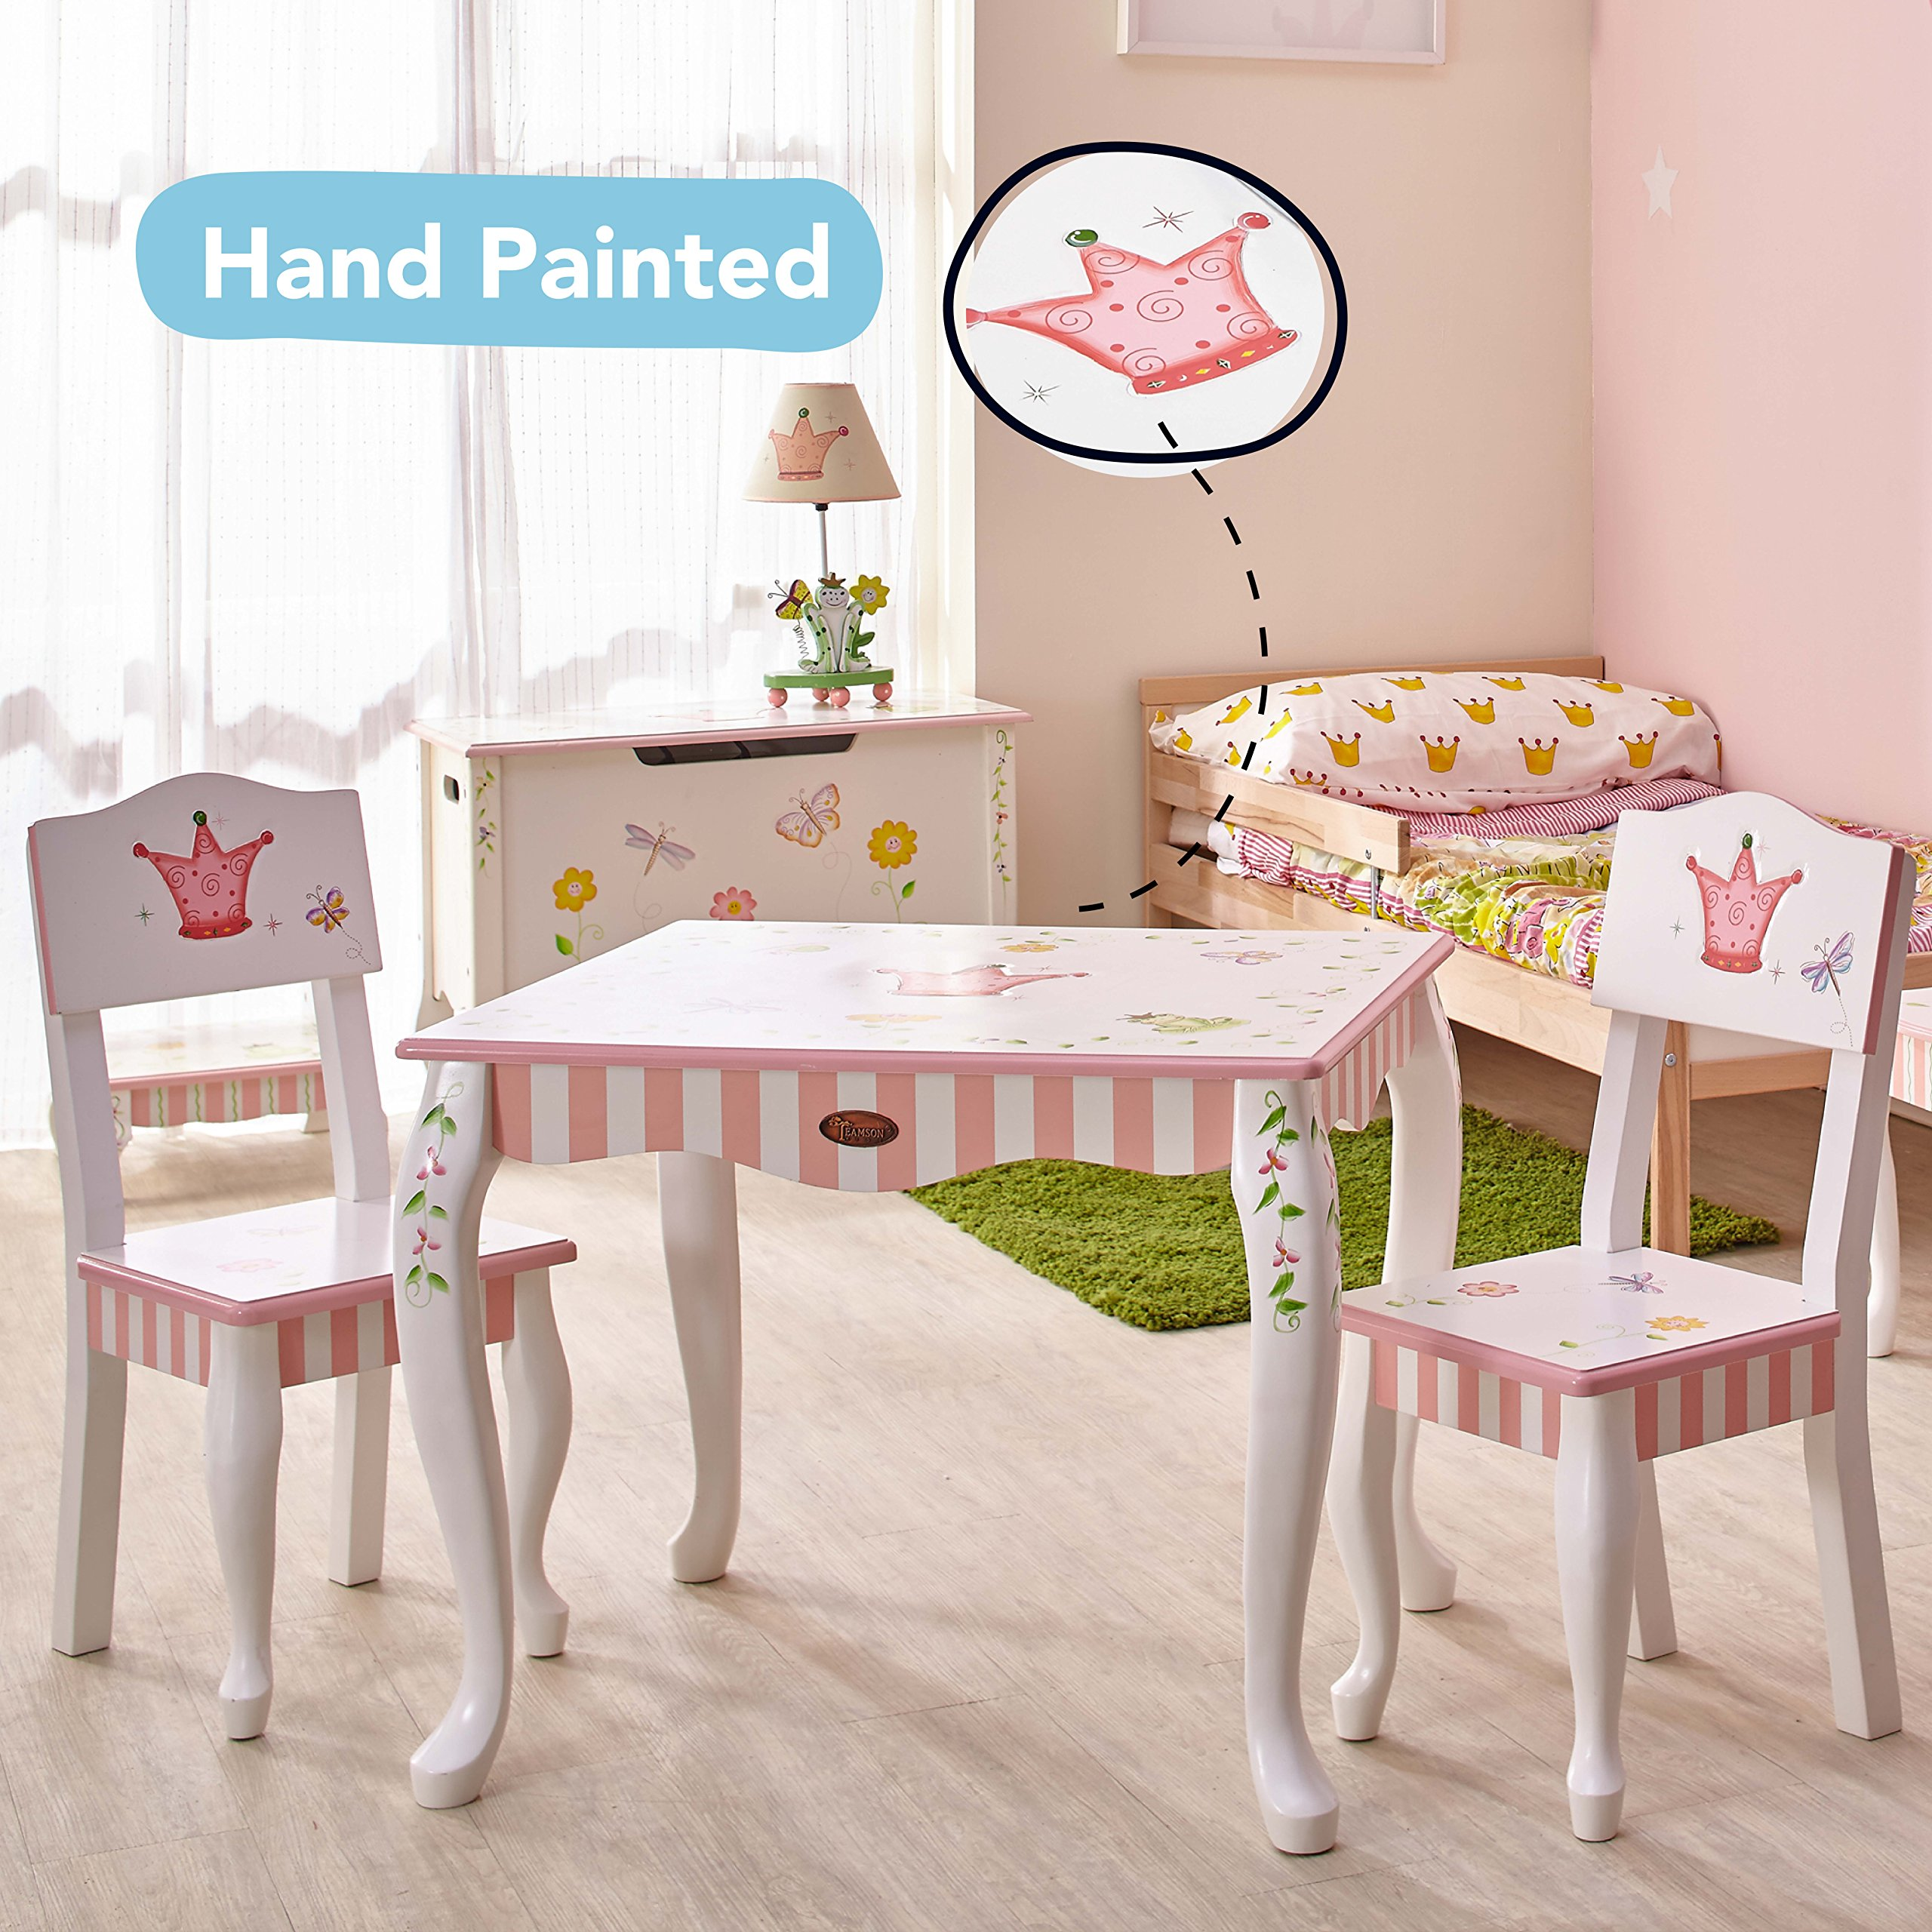 Fantasy Fields - Princess & Frog Thematic Hand Crafted Kids Wooden Table and 2 Chairs Set  Imagination Inspiring Hand Crafted & Hand Painted Details   Non-Toxic, Lead Free Water-based Paint by Fantasy Fields (Image #2)